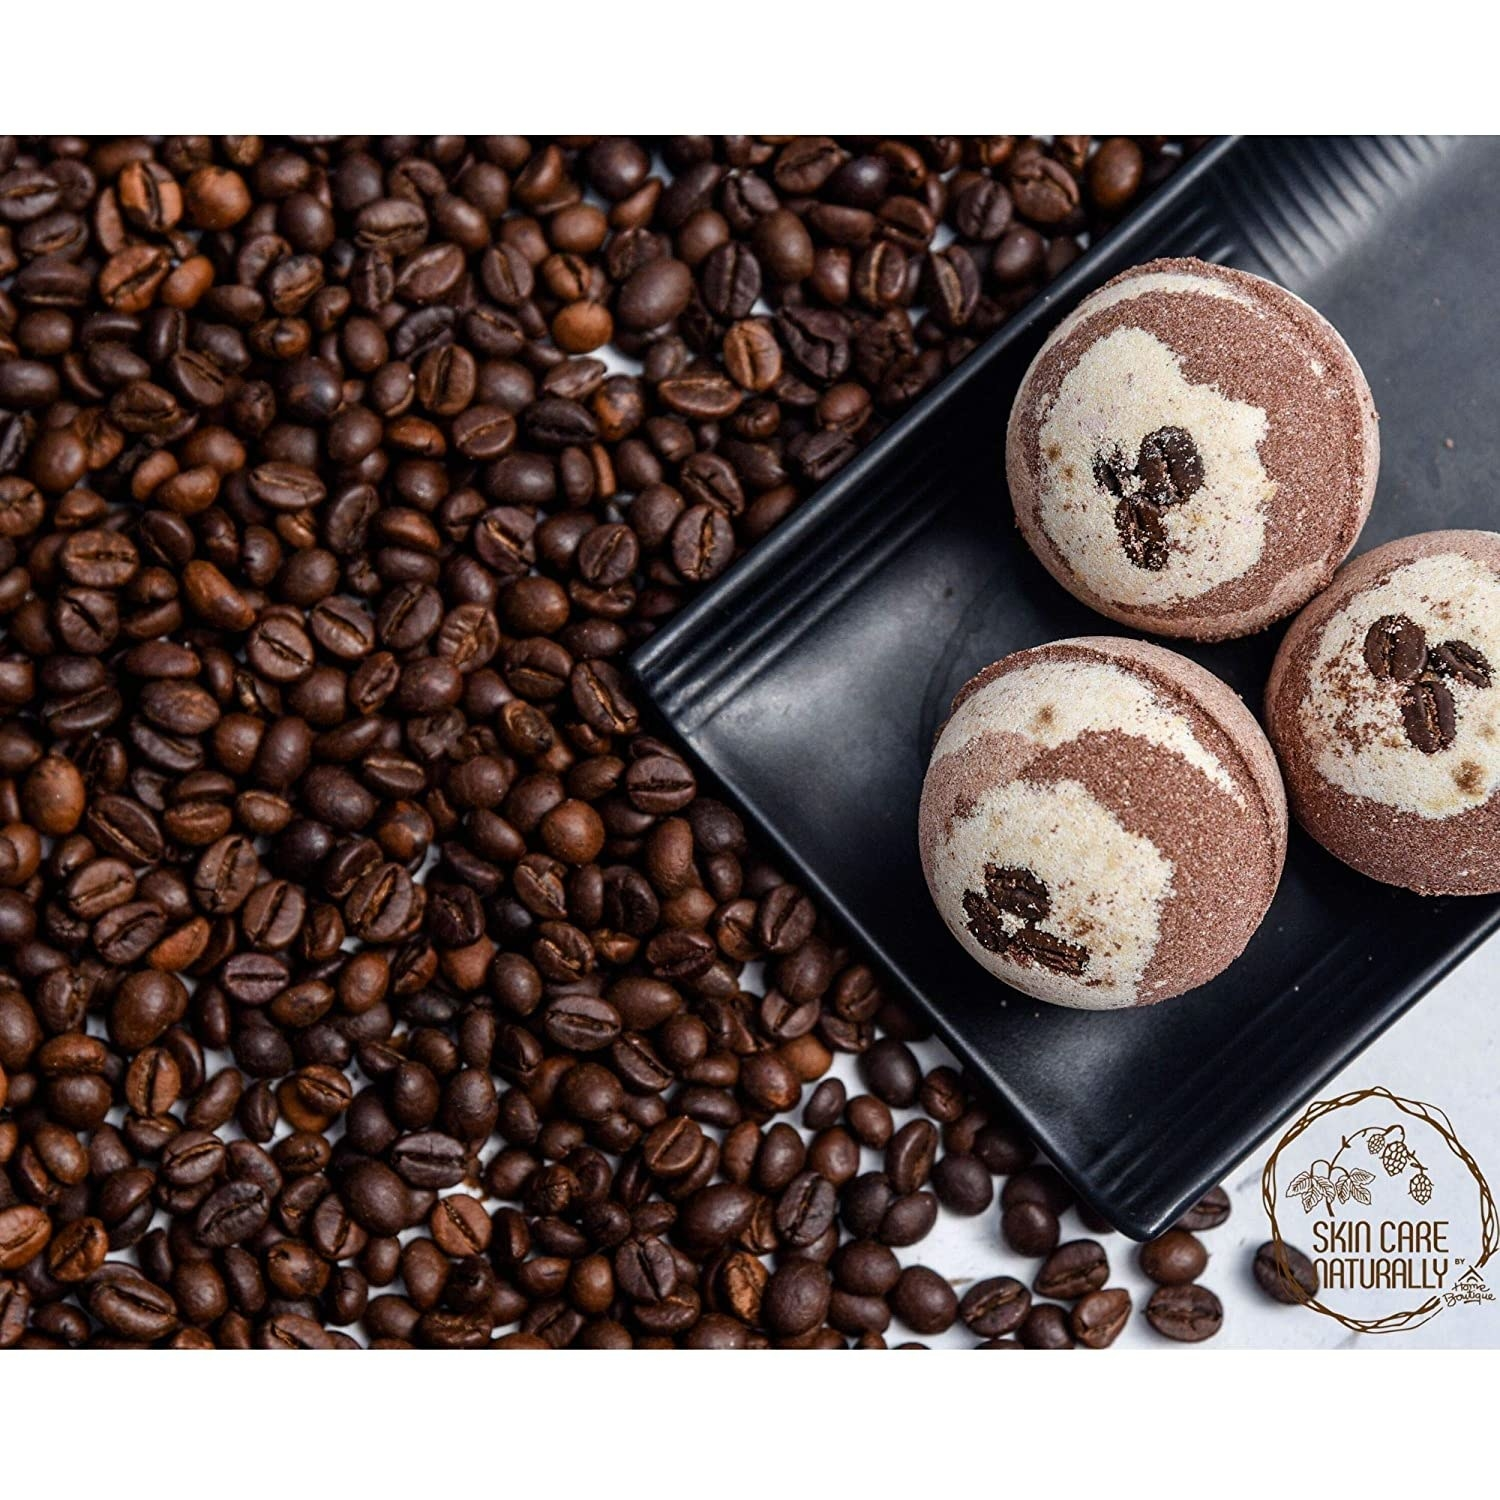 Coffee bath bombs and a pile of coffee beans on the side.